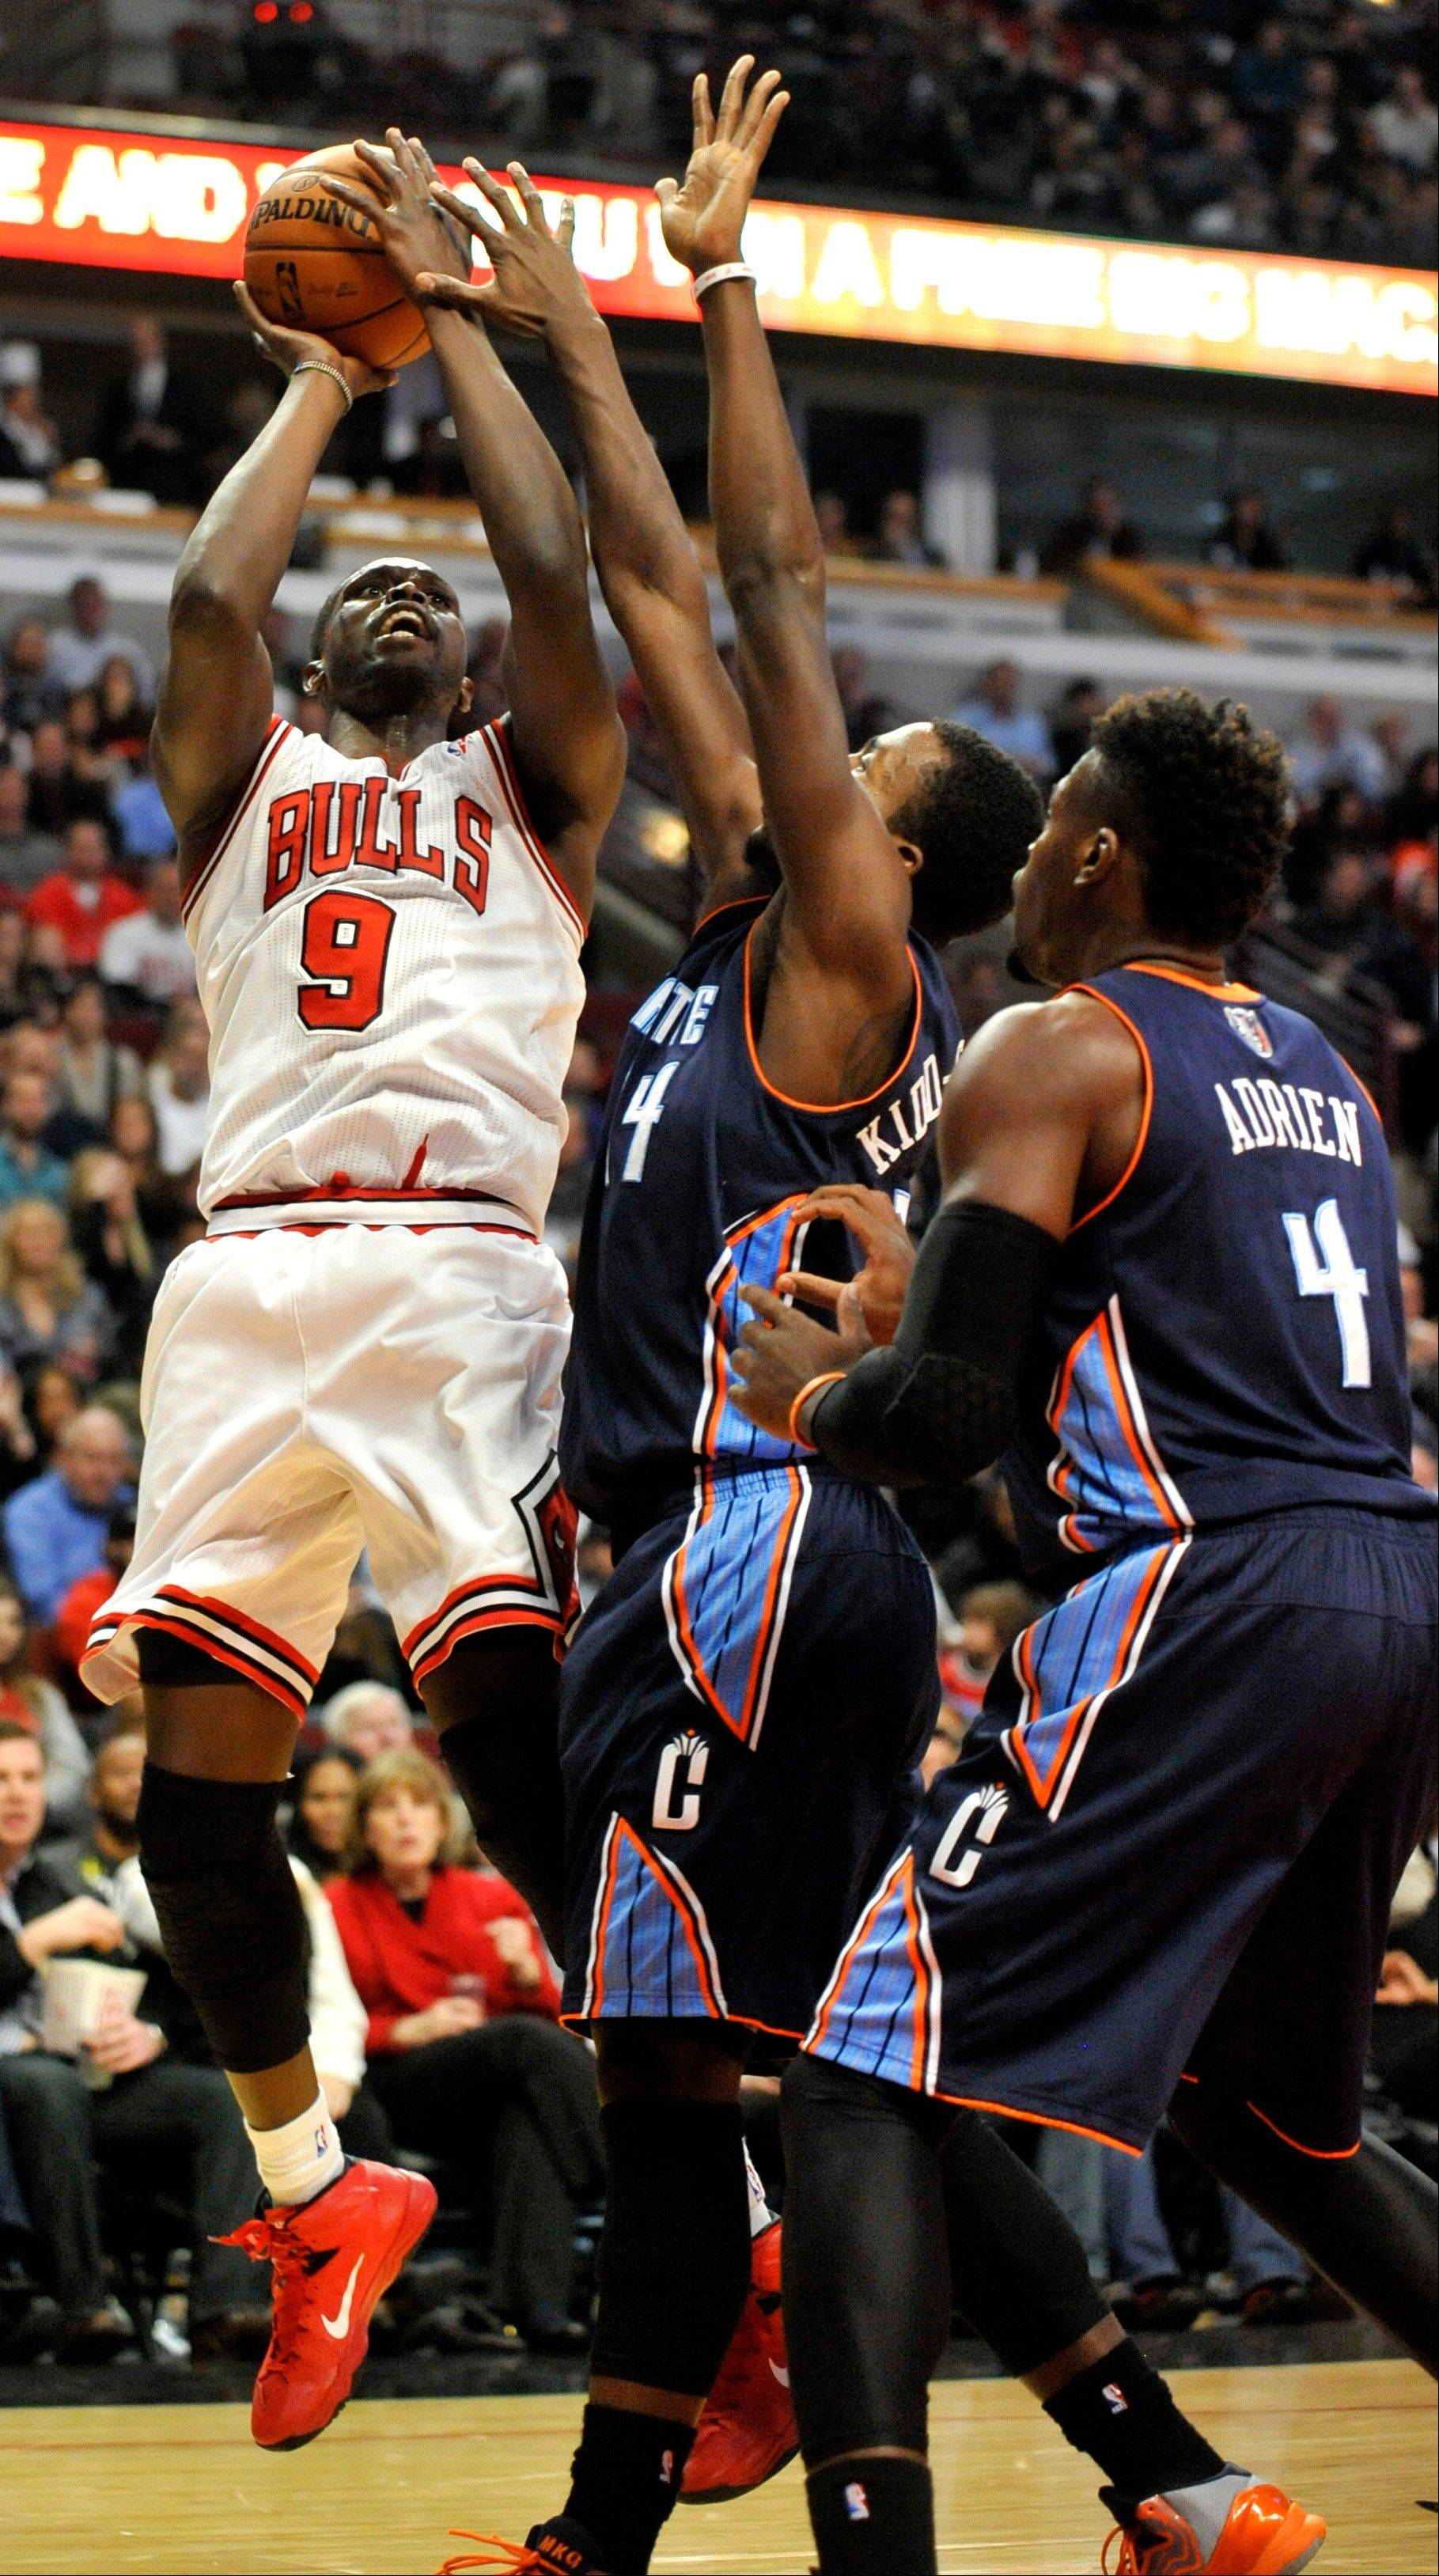 The Bulls� Luol Deng goes up for a shot against Charlotte�s Michael Kidd-Gilchrist (14) and Jeff Adrien (4) during the second quarter of Monday�s game in Chicago.